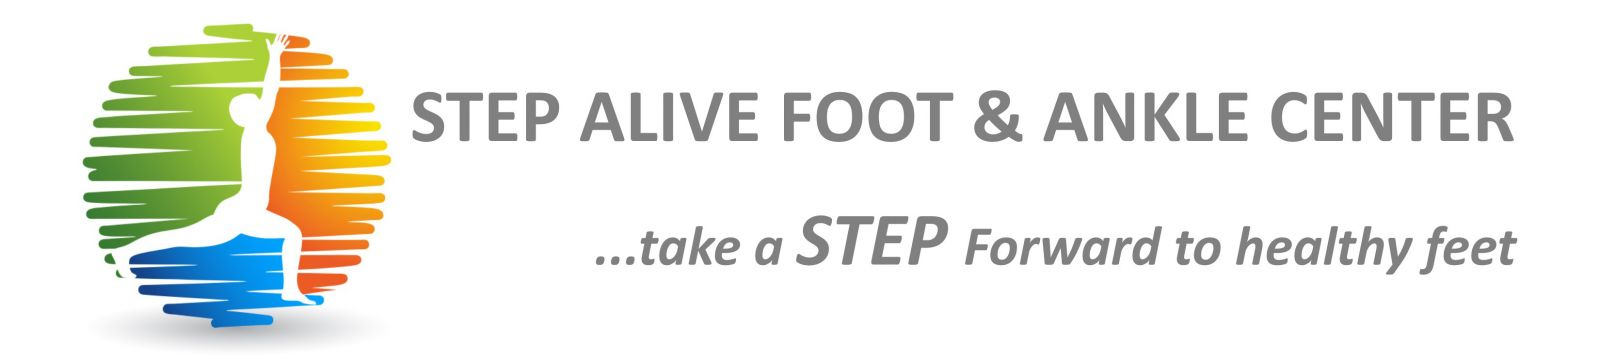 Step Alive Foot & Ankle Center